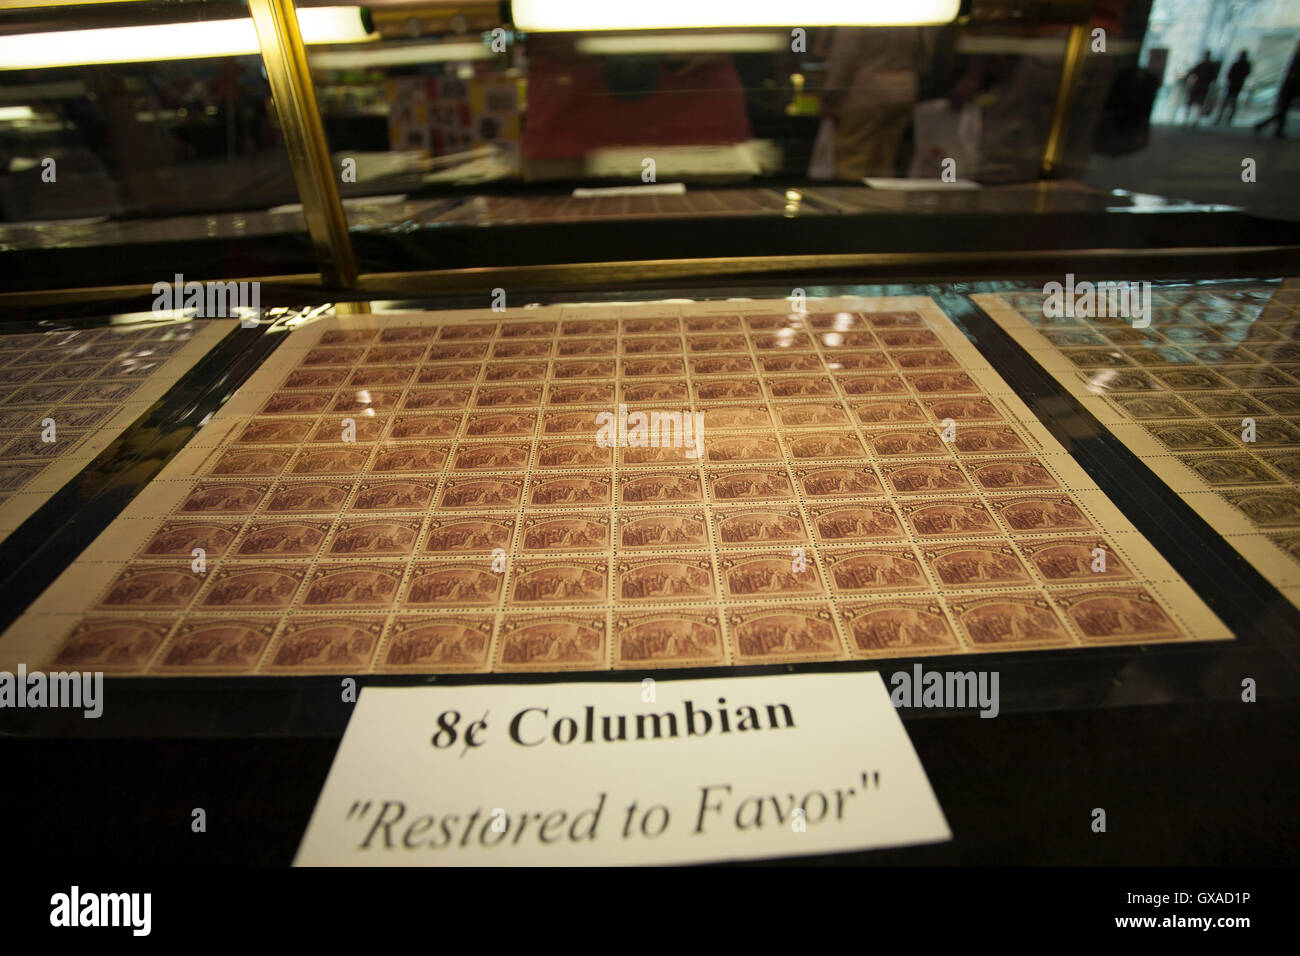 World Stamp Show-NY 2016 display of a rare Columbian sheet of stamps. - Stock Image